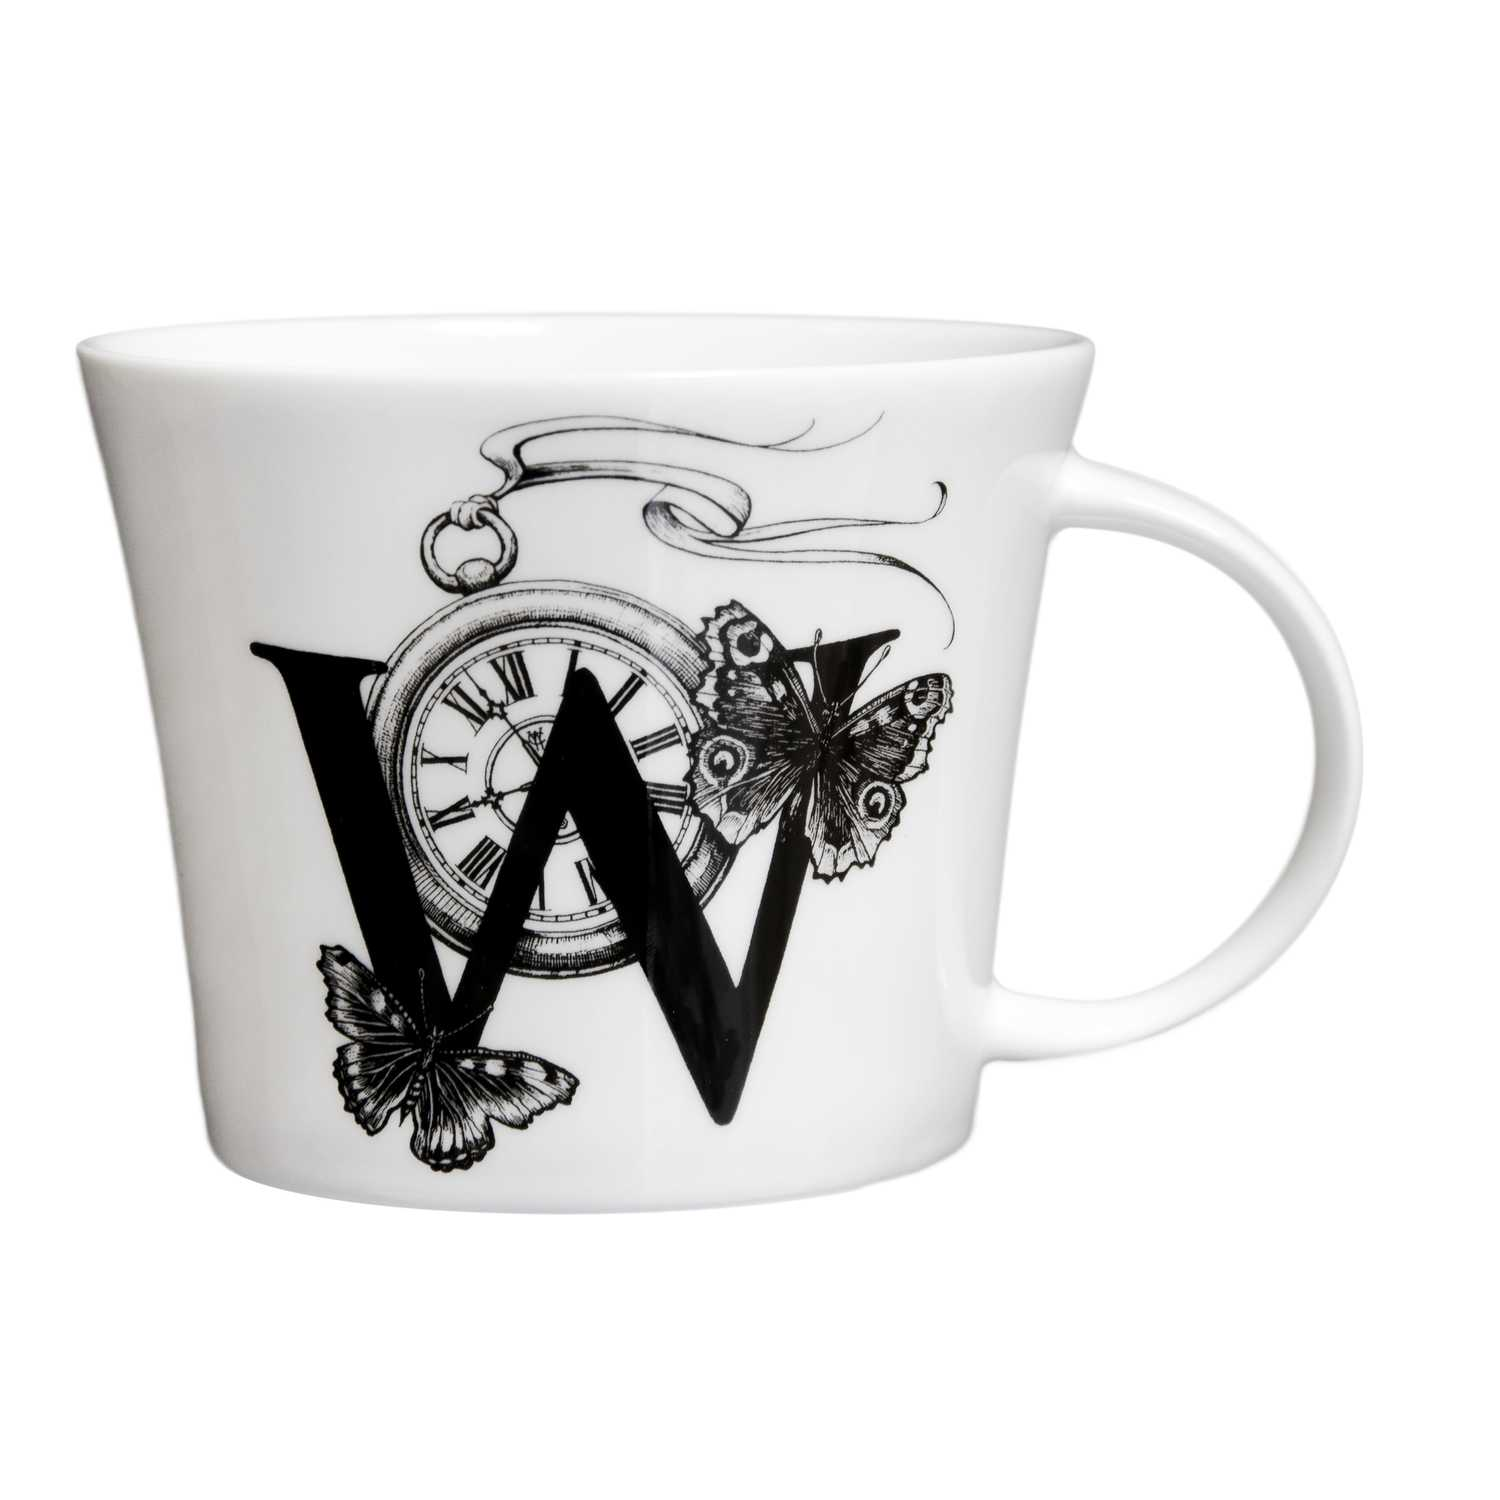 W letter with the clock and two butterflies on a sides in ink design on white bone china mug